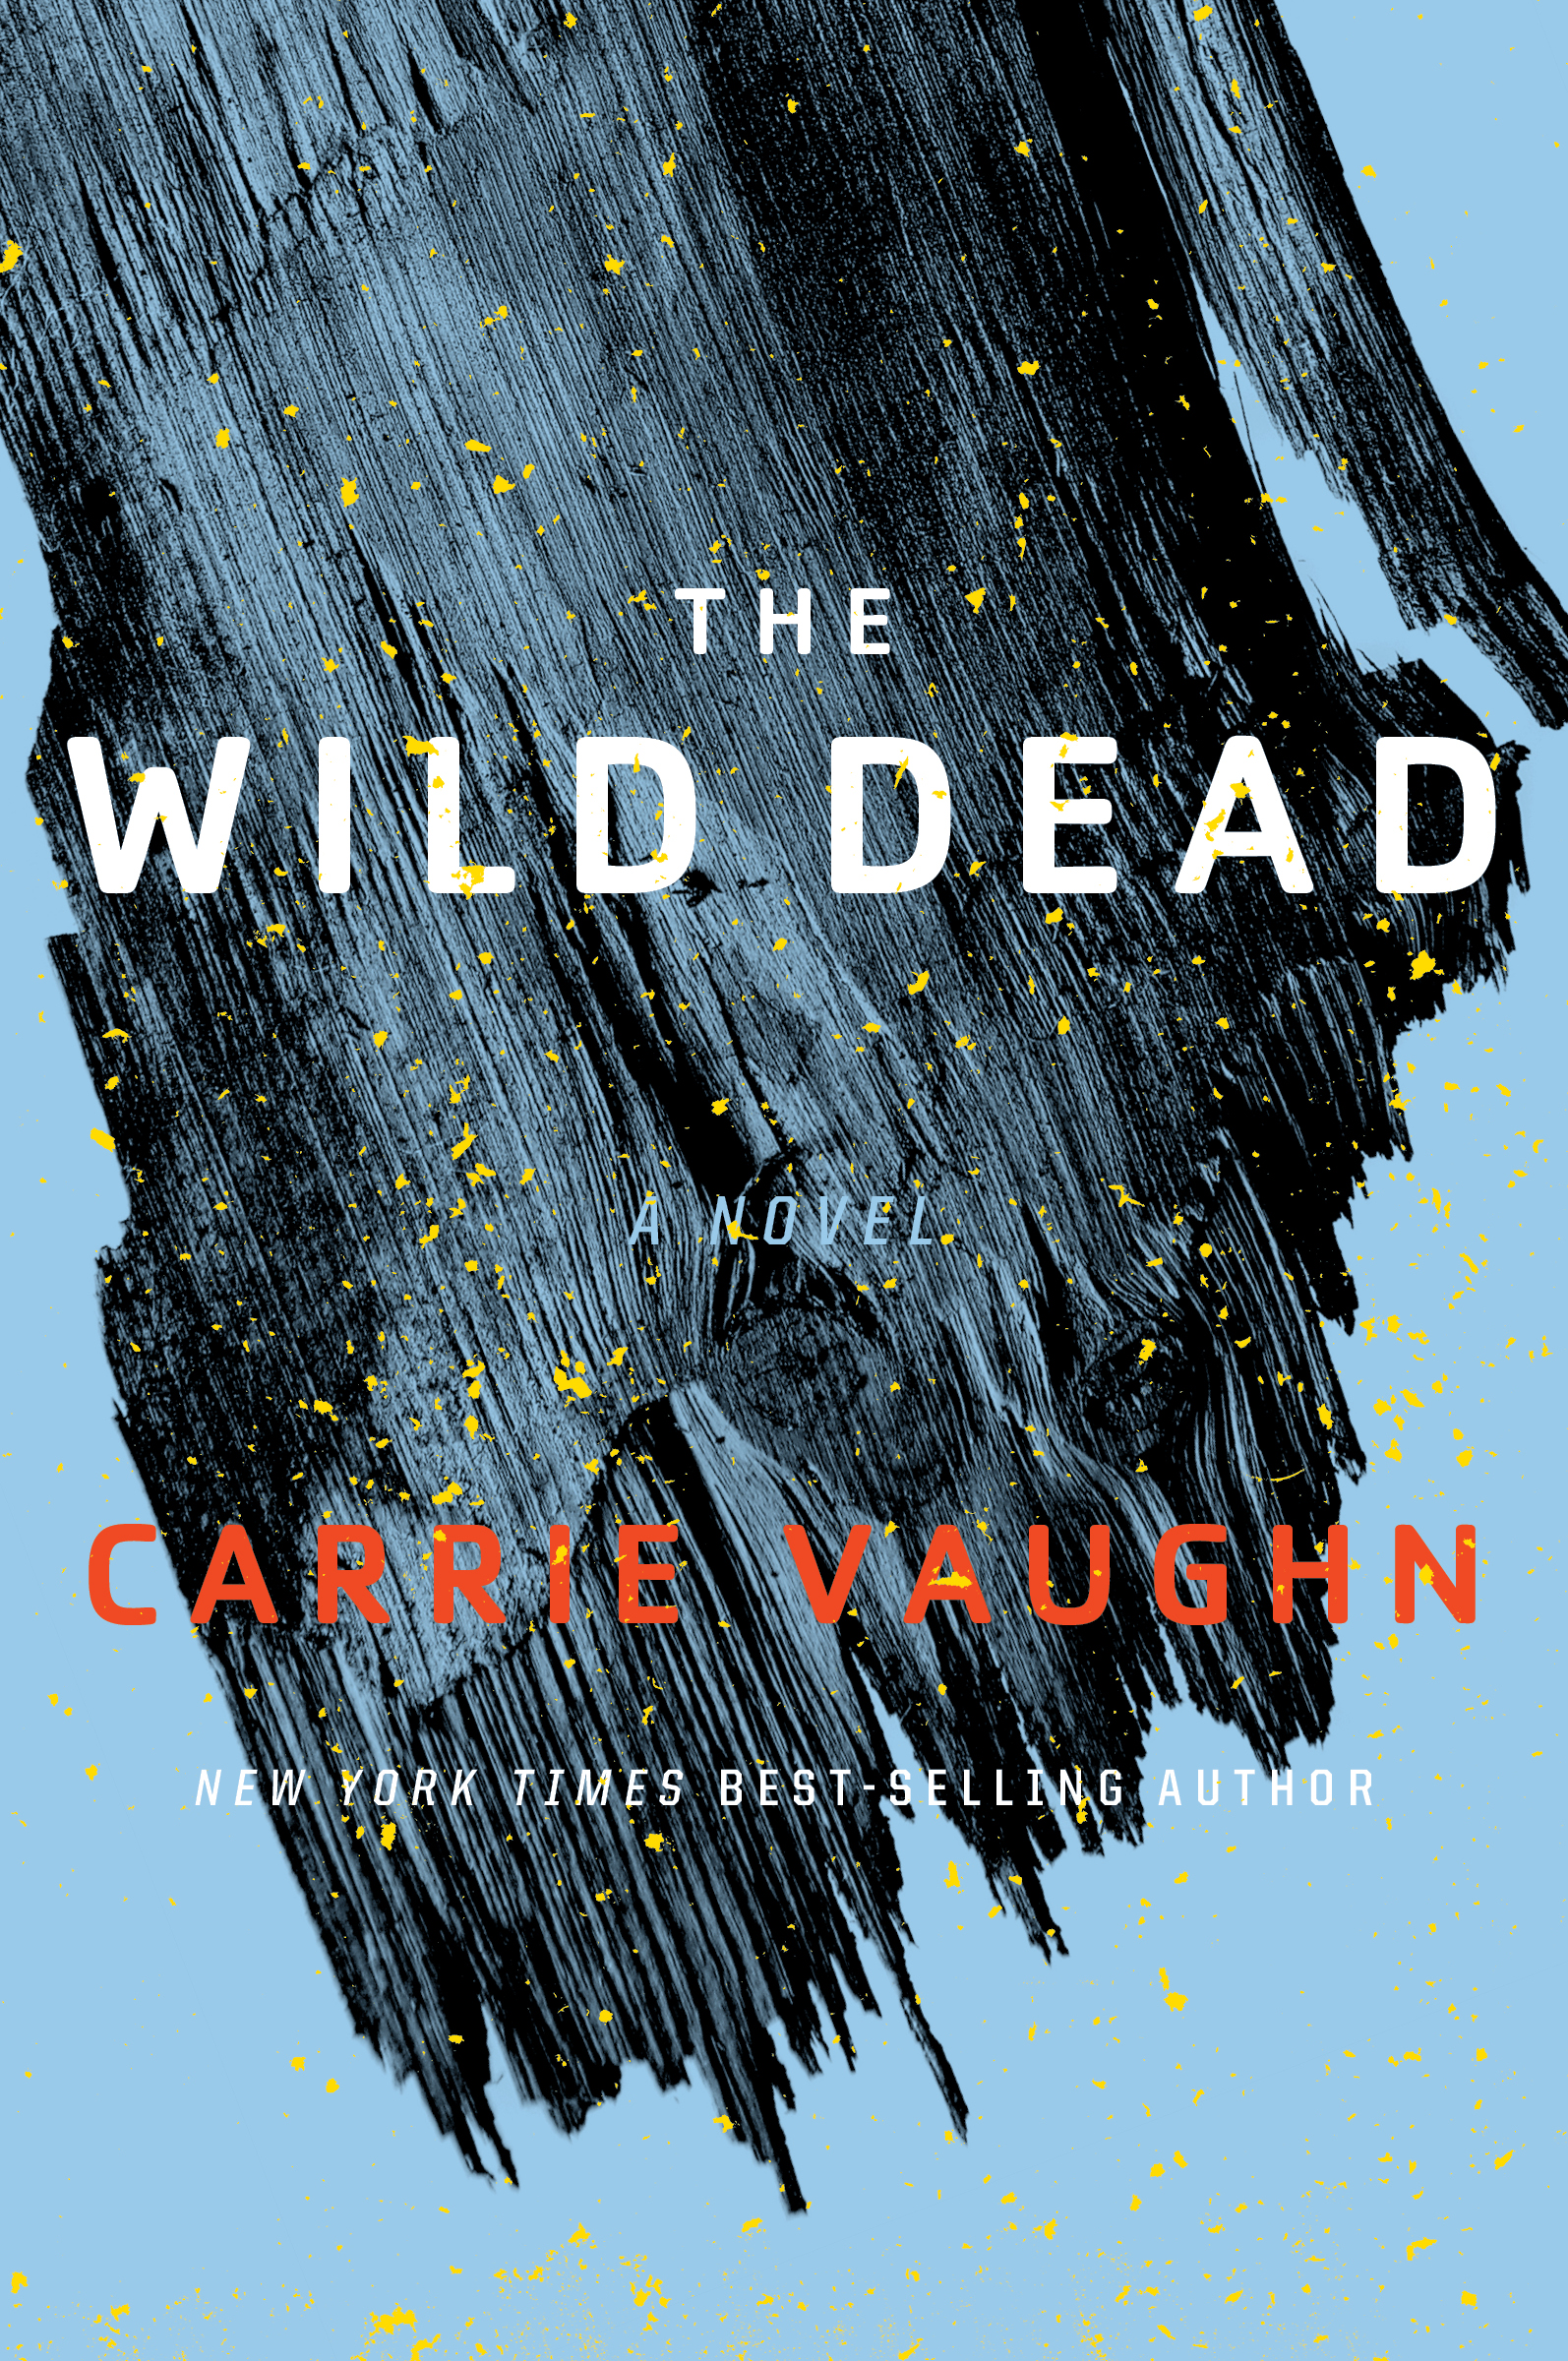 Carrie Vaughn: Five Things I Learned Writing The Wild Dead